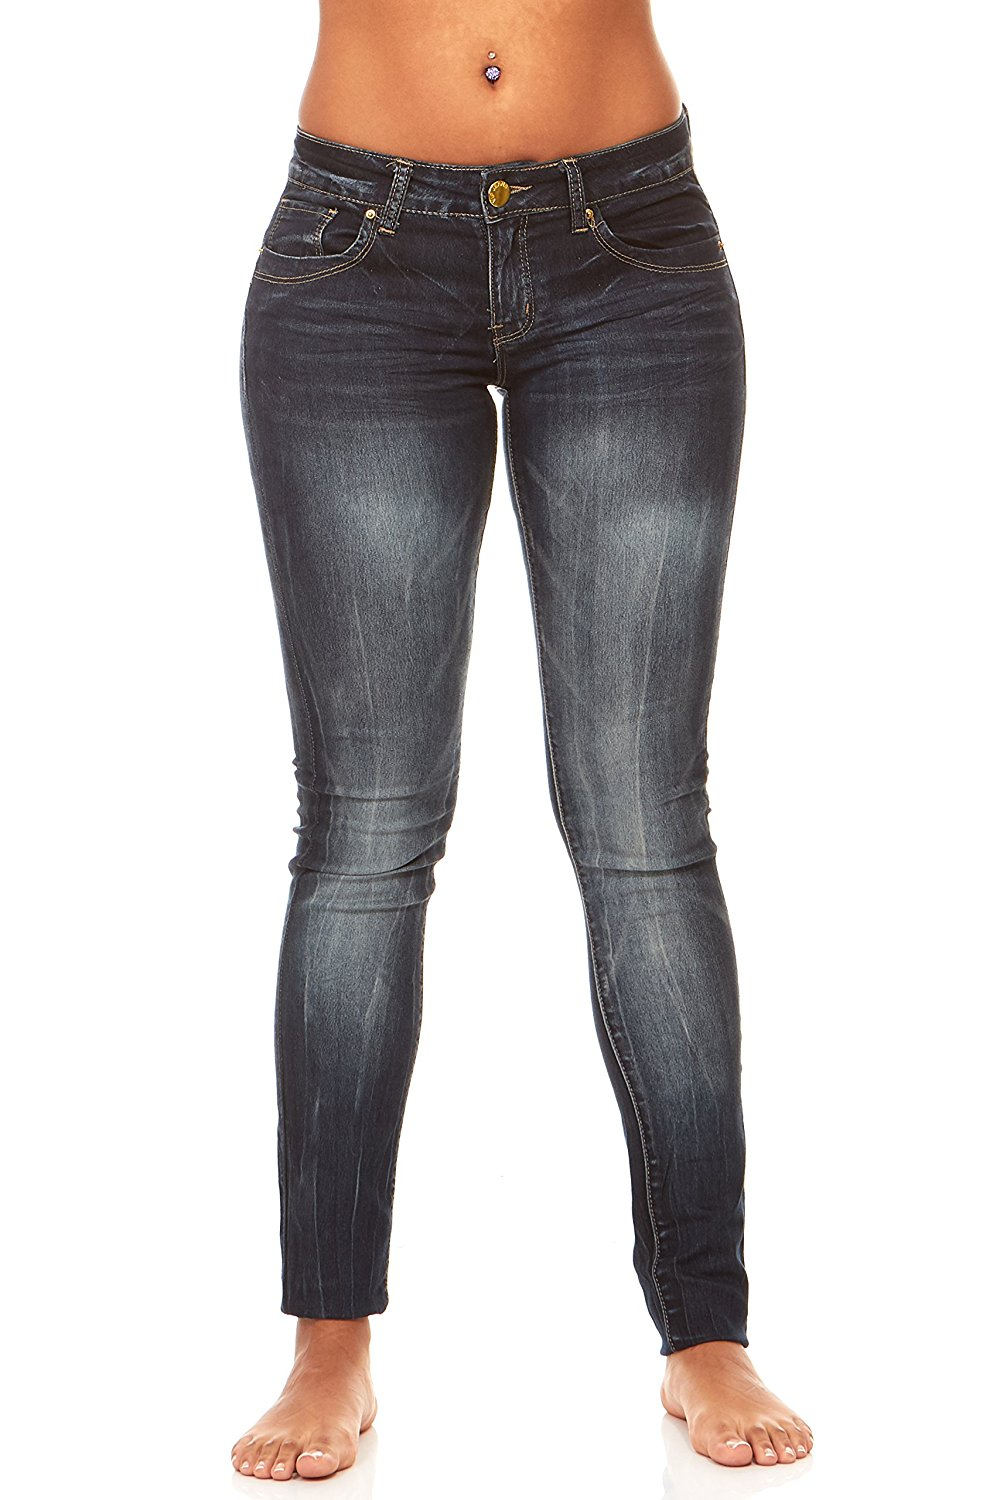 a6135a0db6662 Get Quotations · V.I.P. JEANS Womens Plus Size Black Dark Blue Skinny Jeans  for Women